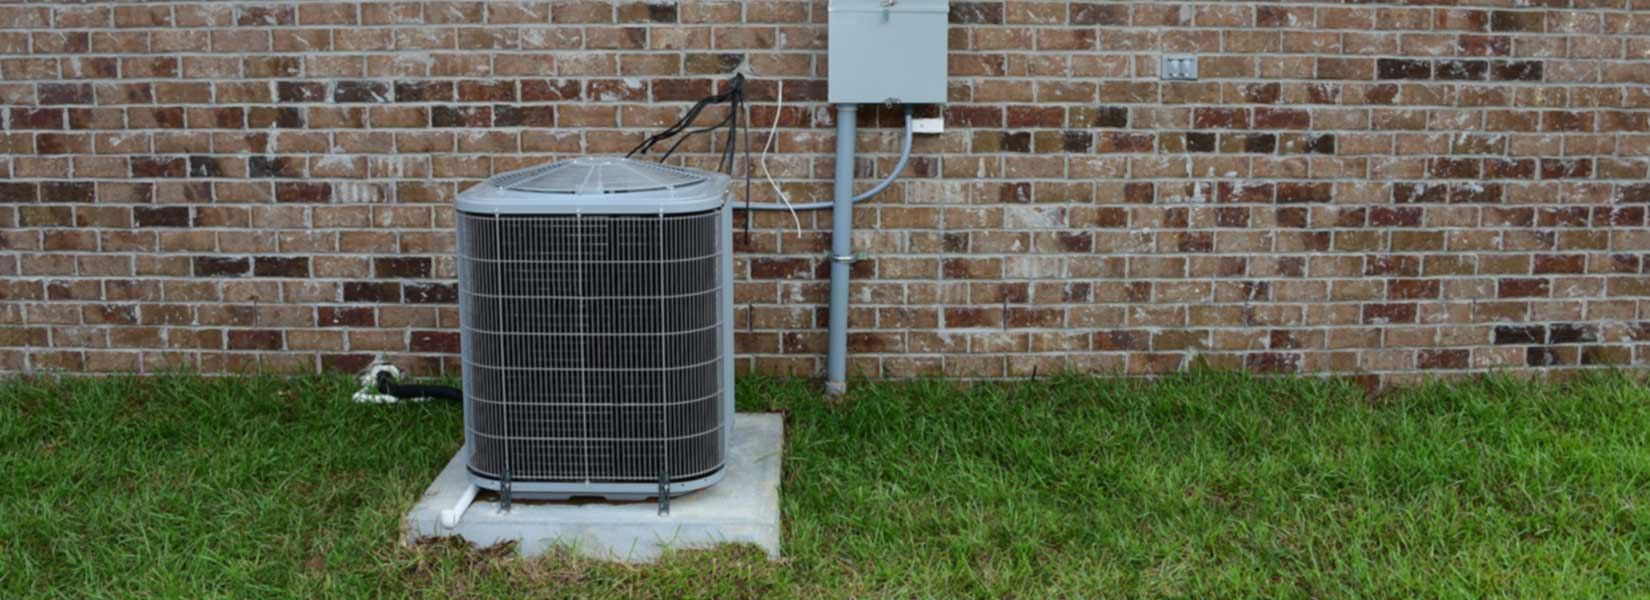 What Is An AC Cover And Why Should You Use One?